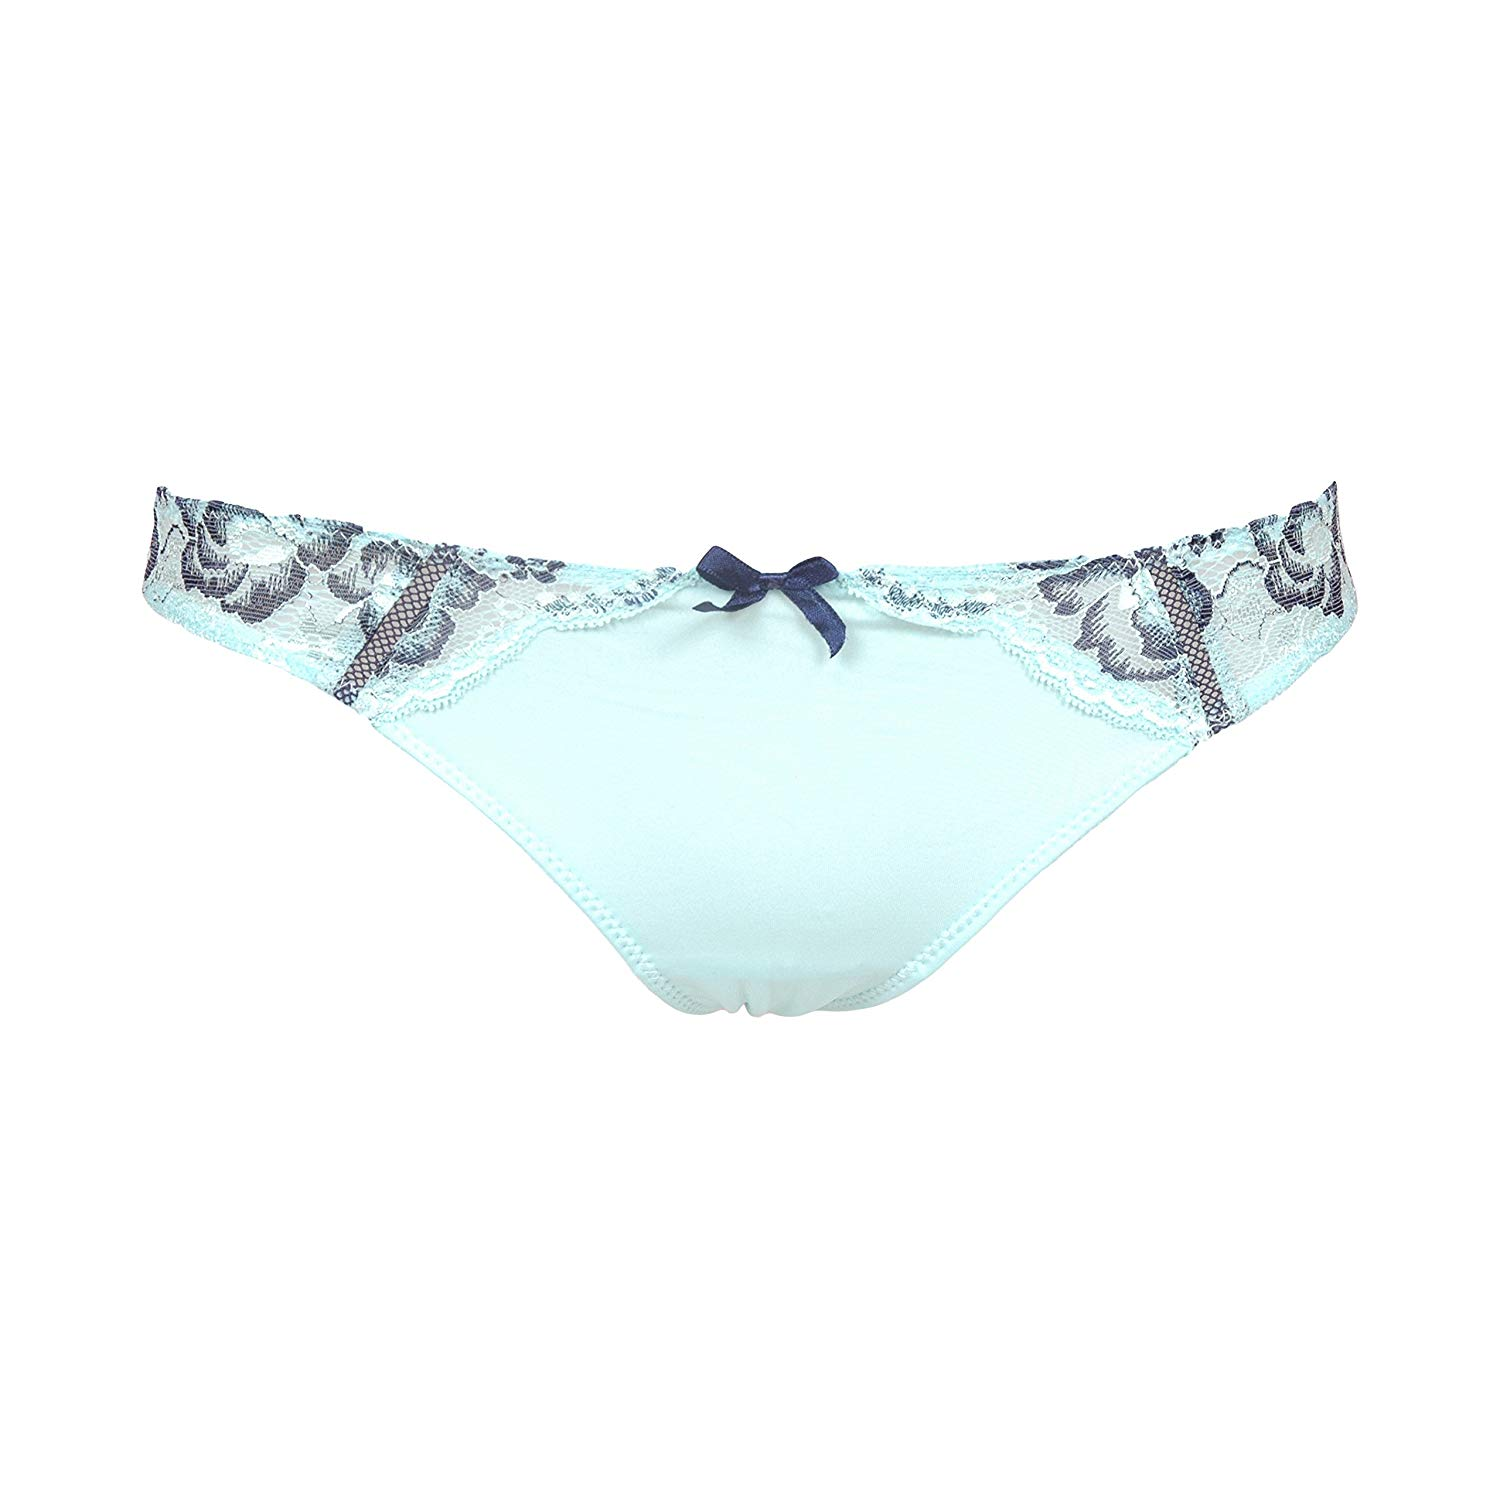 b1dd3768b Get Quotations · Baby Blue Lace And Microfiber Thong